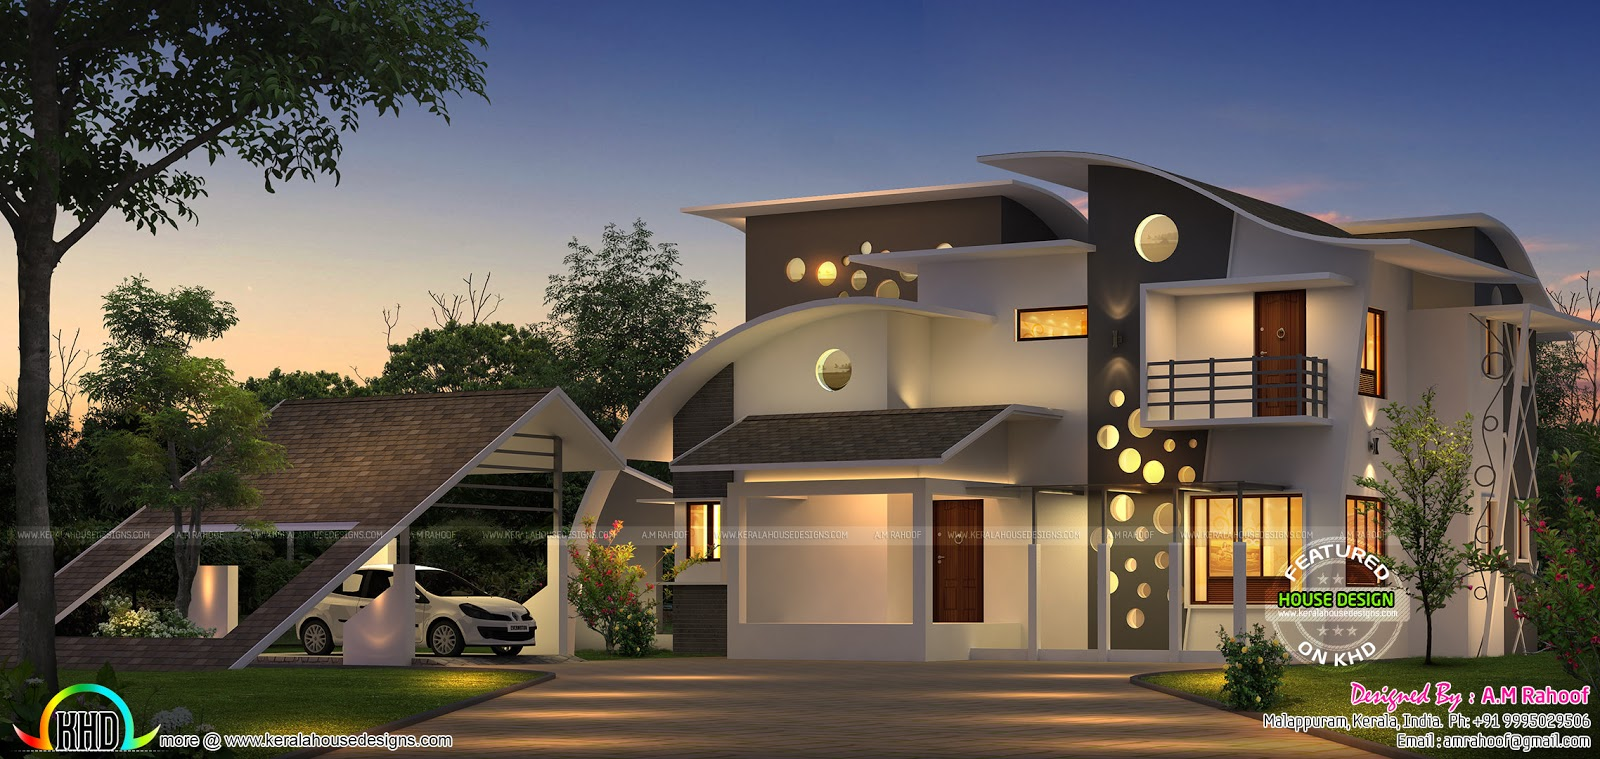 Unique house with cantilever balcony home design simple for Awesome home design ideas